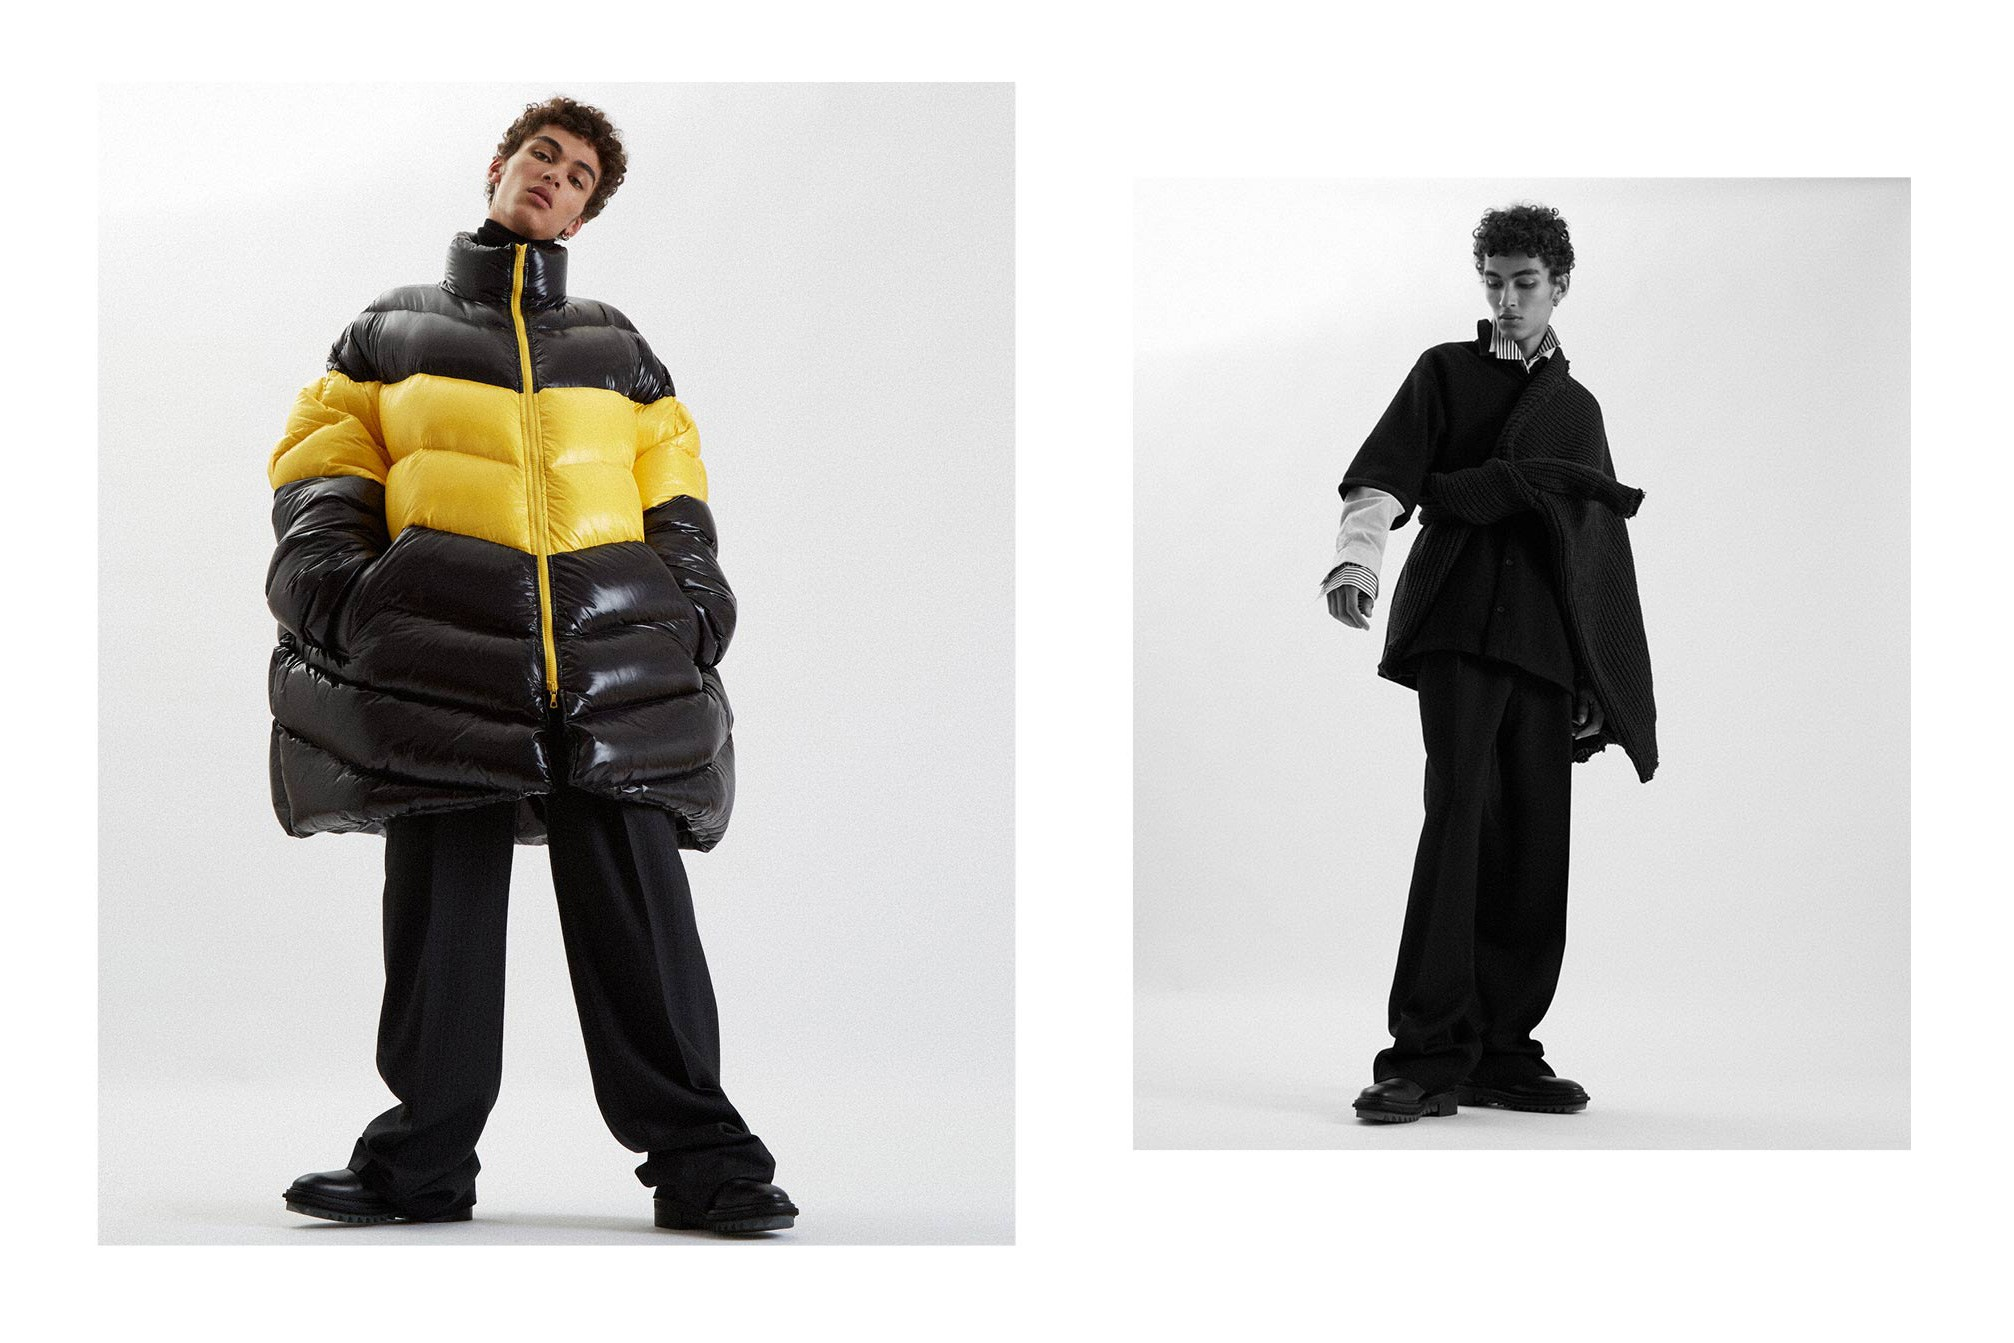 ln-cc-oversized-youth-editorial-4